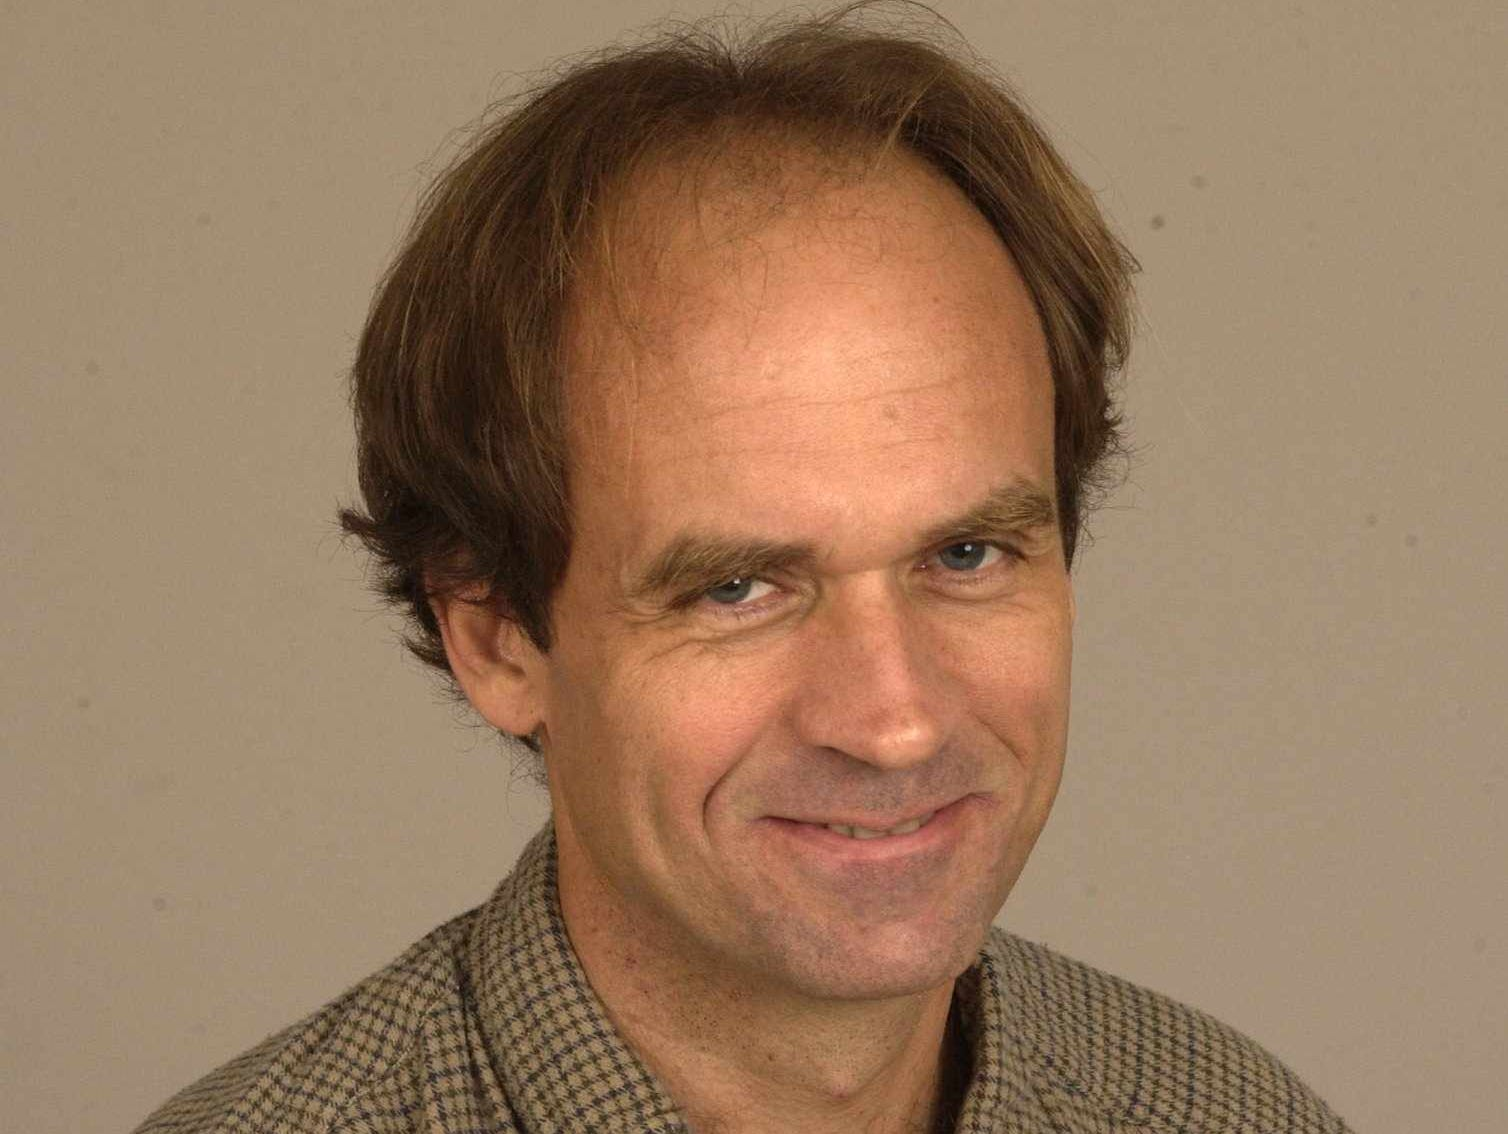 David Jones is the new sports columnist for FLORIDA TODAY.